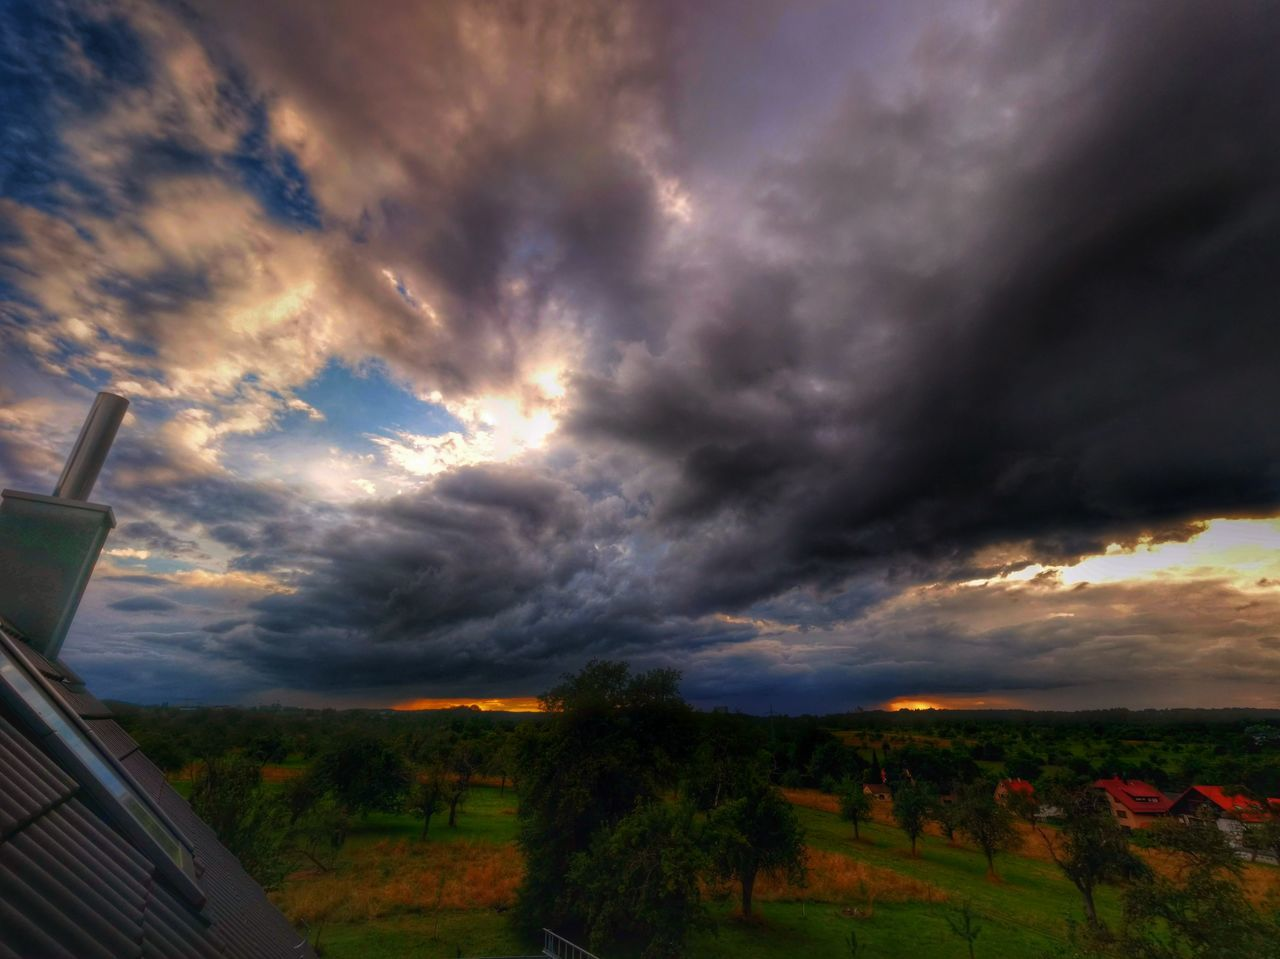 cloud - sky, sky, nature, dramatic sky, scenics, beauty in nature, no people, tranquility, tranquil scene, outdoors, sunset, storm cloud, landscape, tree, day, grass